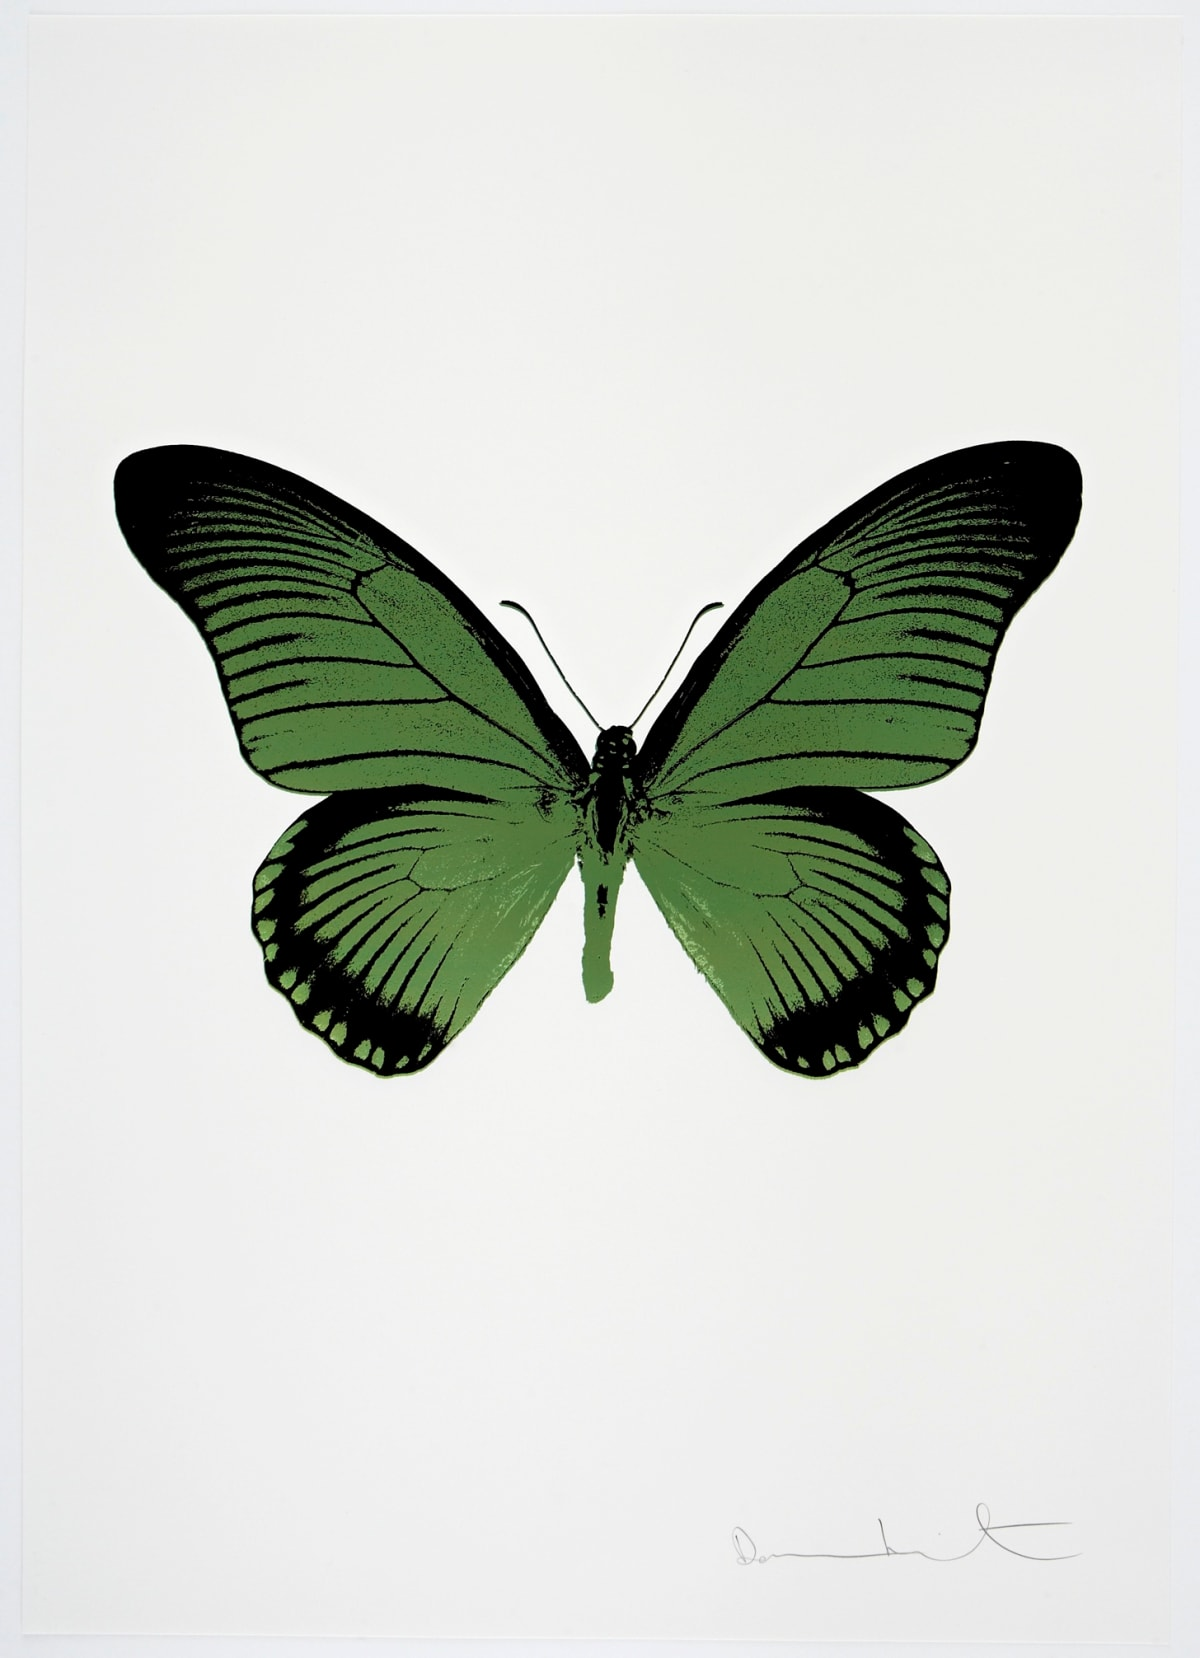 Damien Hirst The Souls IV - Leaf Green/Raven Black Damien Hirst butterfly foil print for sale Damien Hirst print for sale , 2010 2 colour foil block on 300gsm Arches 88 archival paper. Signed and numbered. Published by Paul Stolper and Other Criteria 72 x 51cm OC7979 / 1418-2 Edition of 15